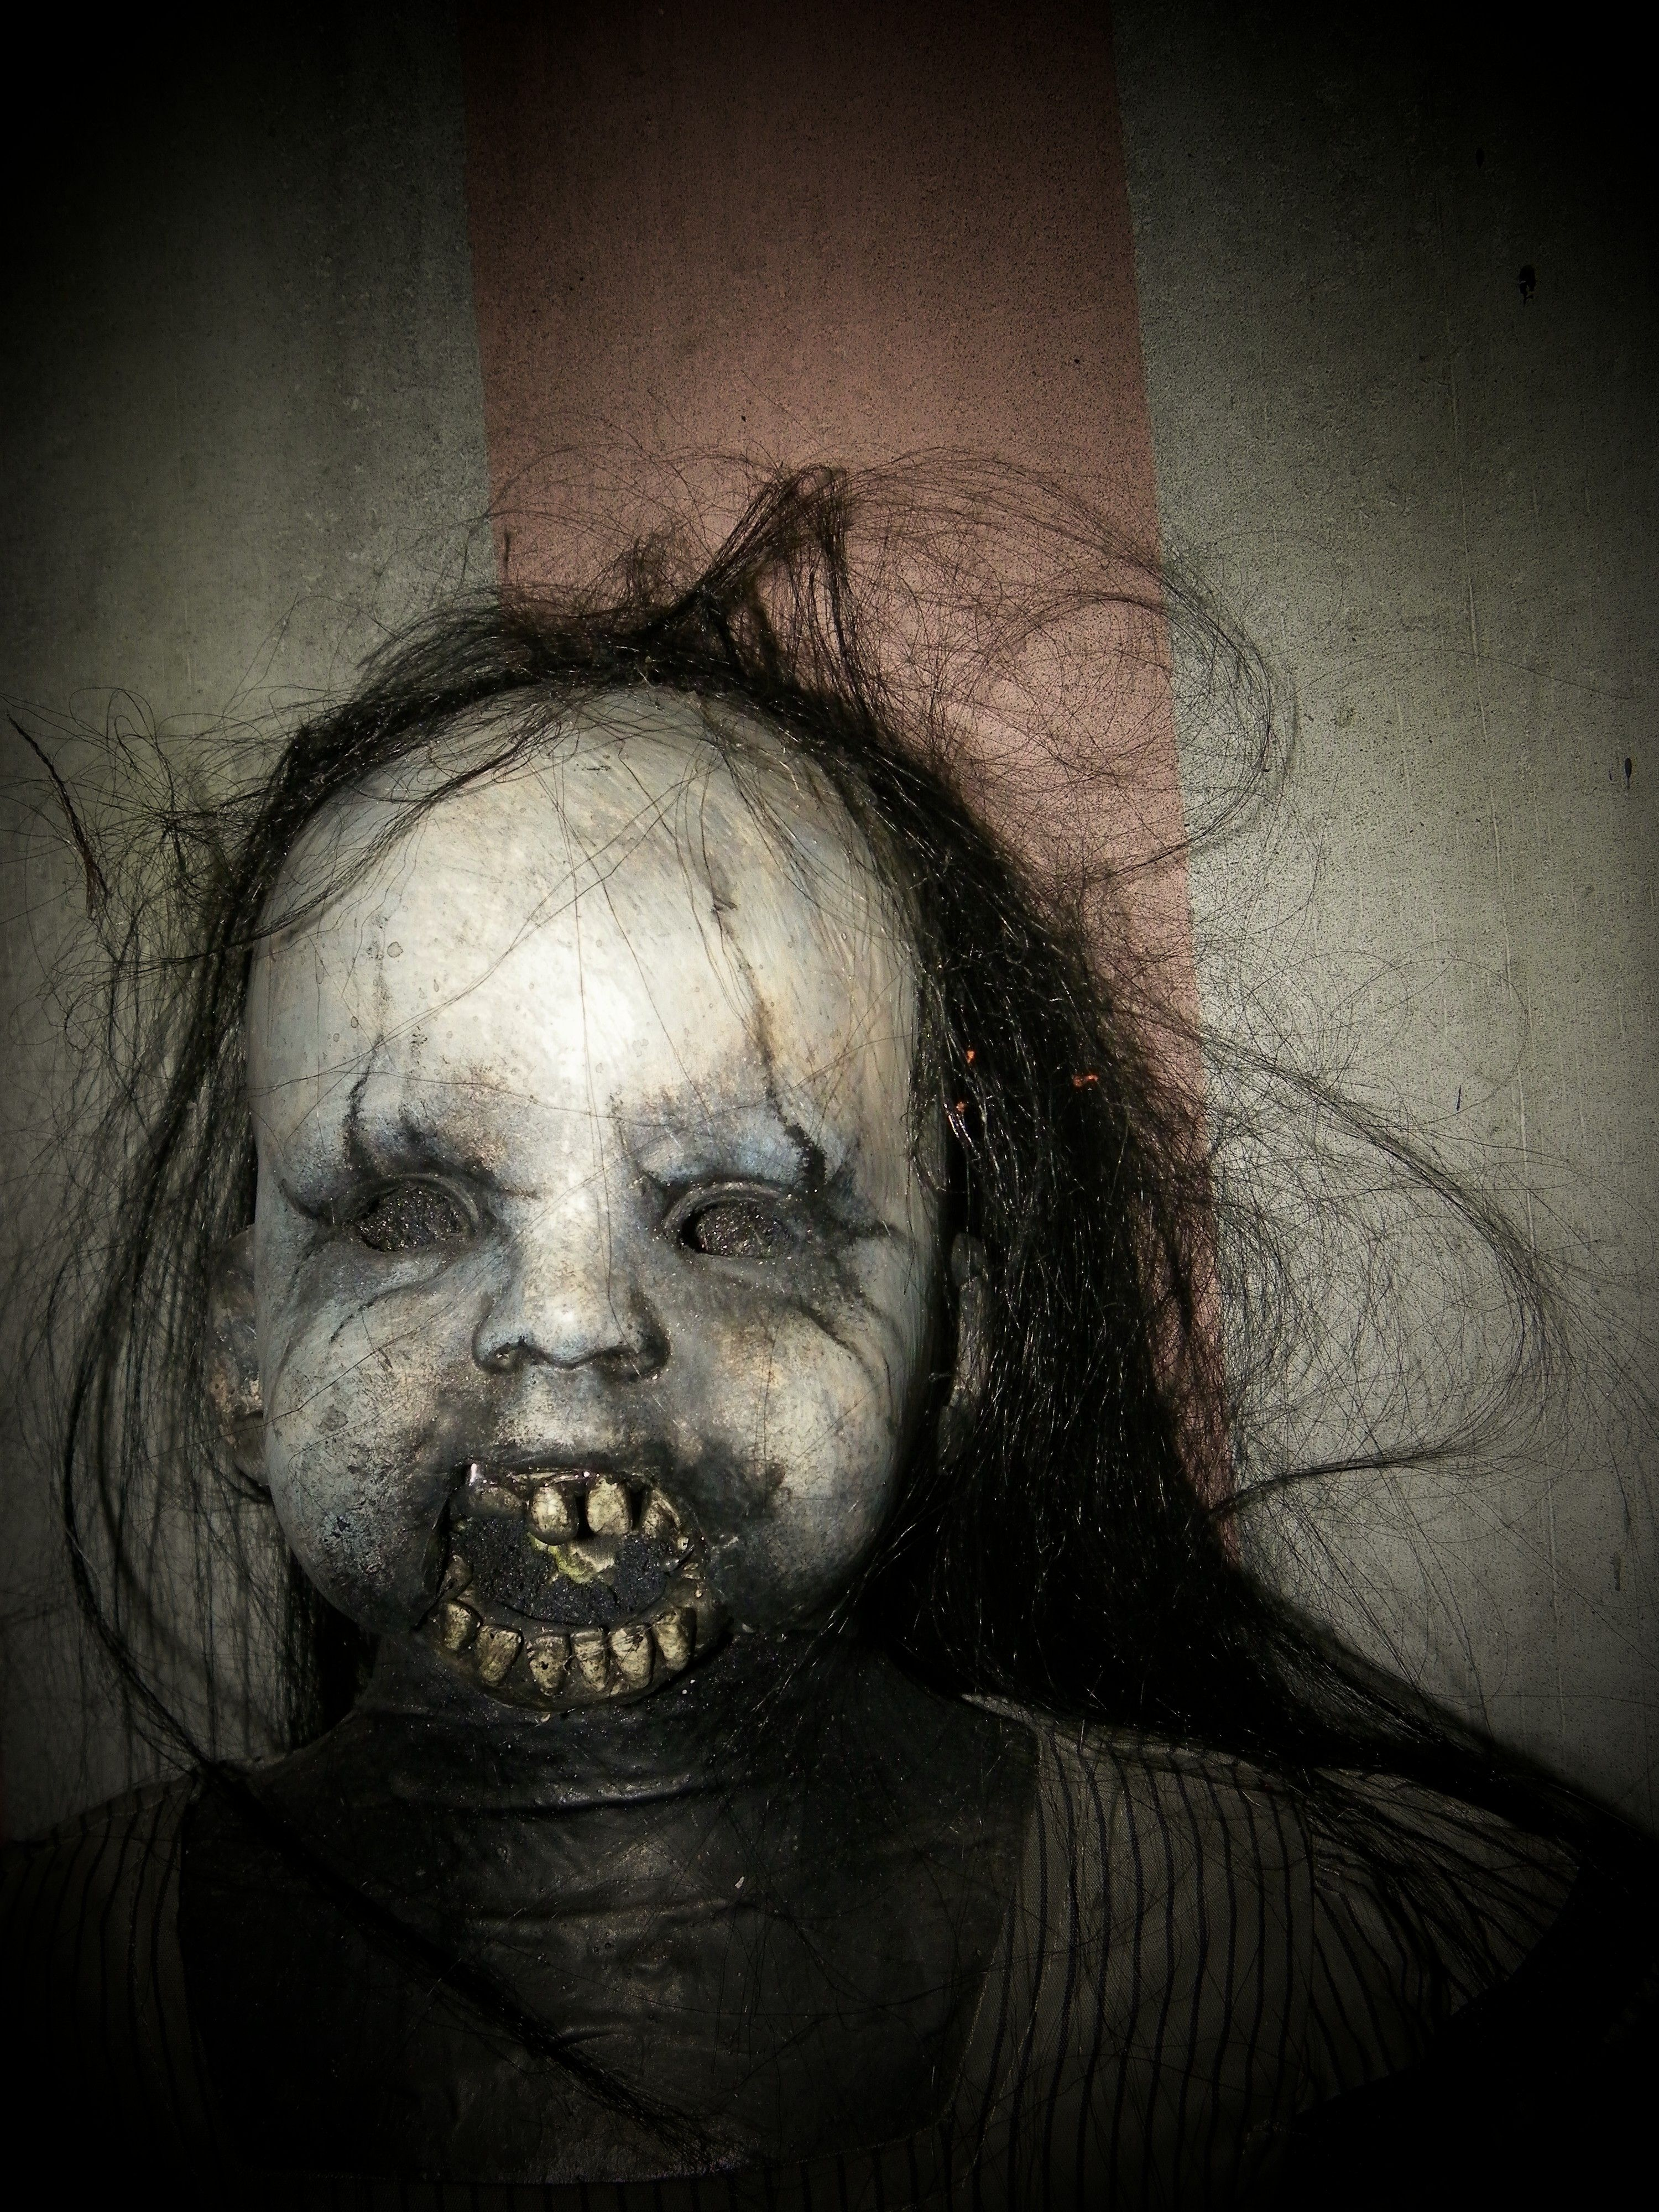 scary doll for halloween | Life Size Creepy deadly Scary ... Creepy Scary